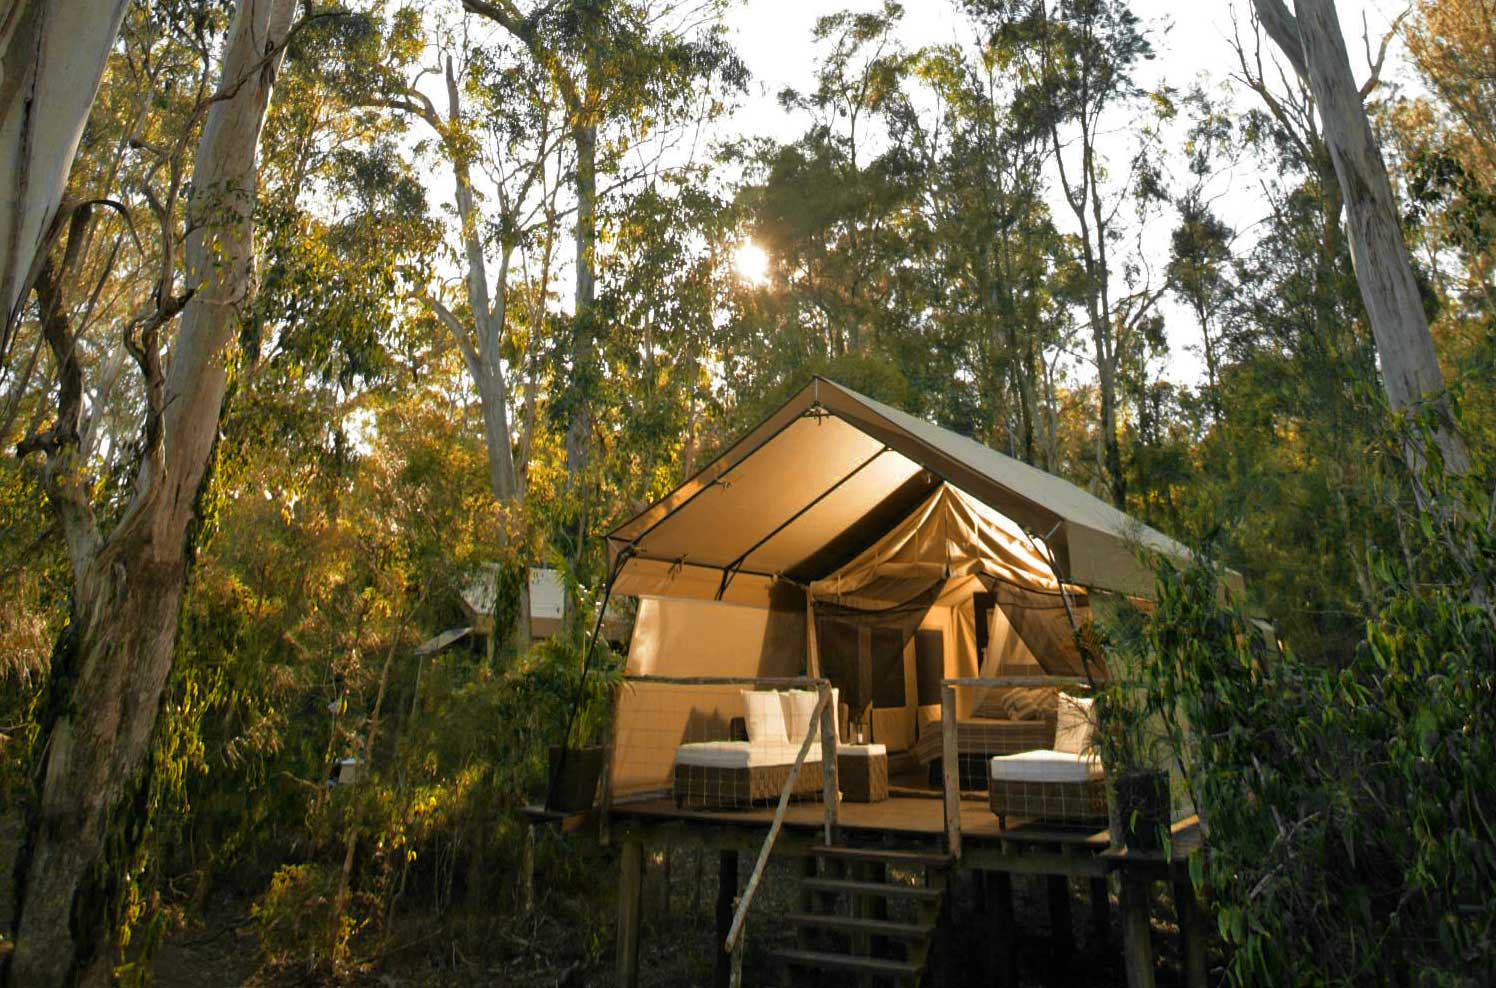 Glamping california online images - 3D HD Wallpapers